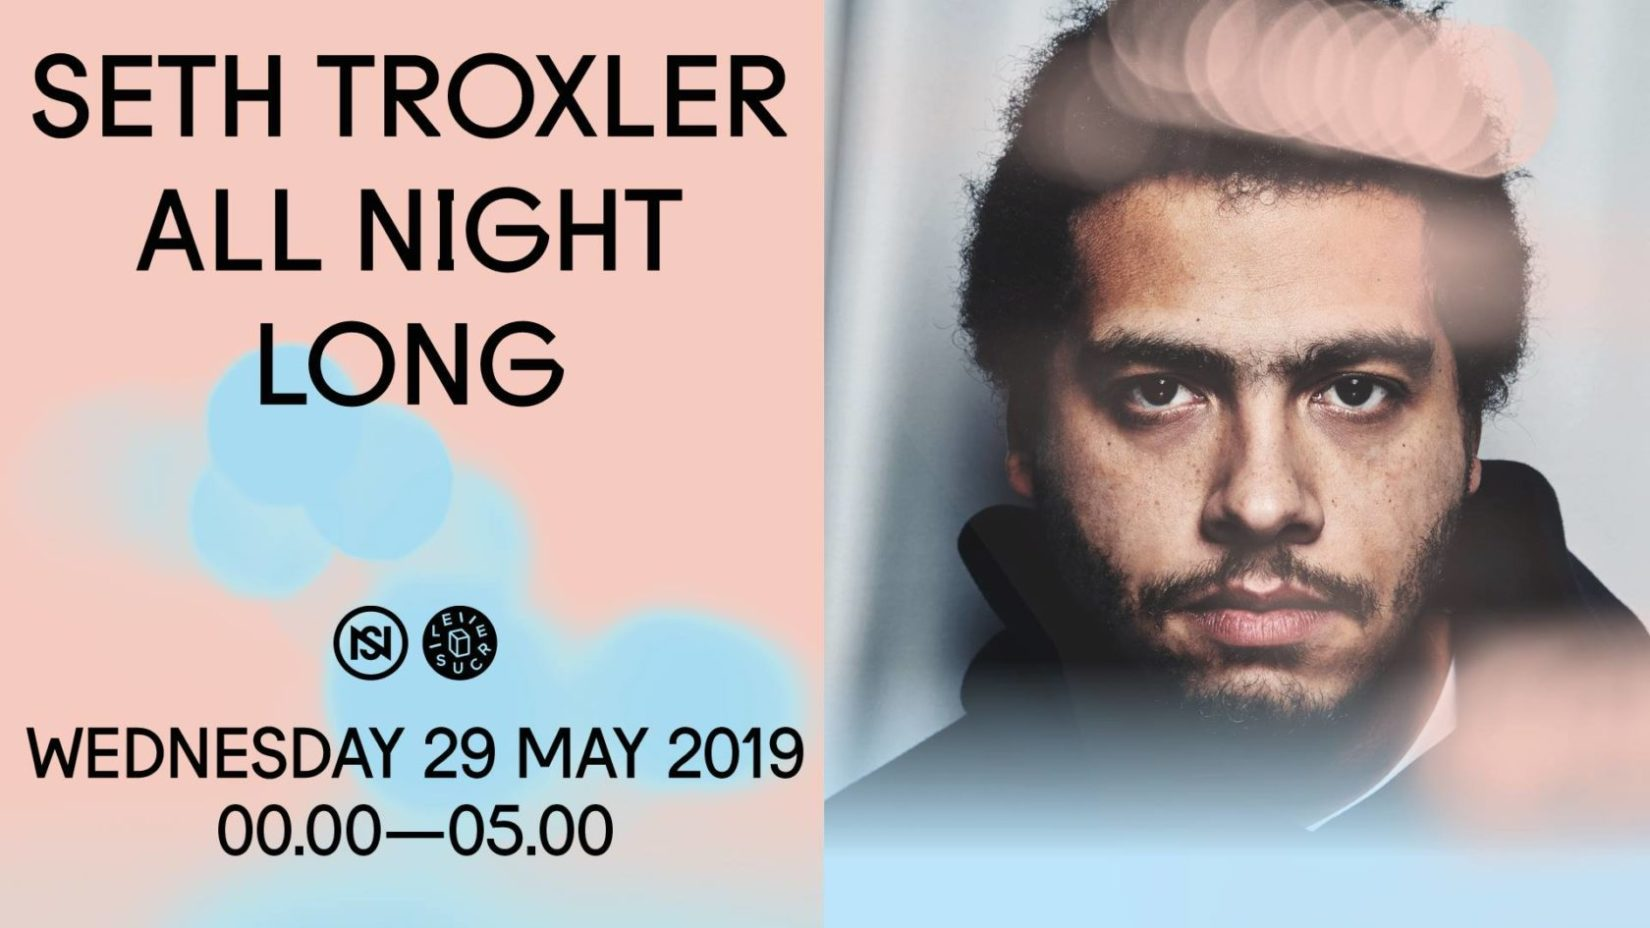 Nuits sonores : Seth Troxler all night long